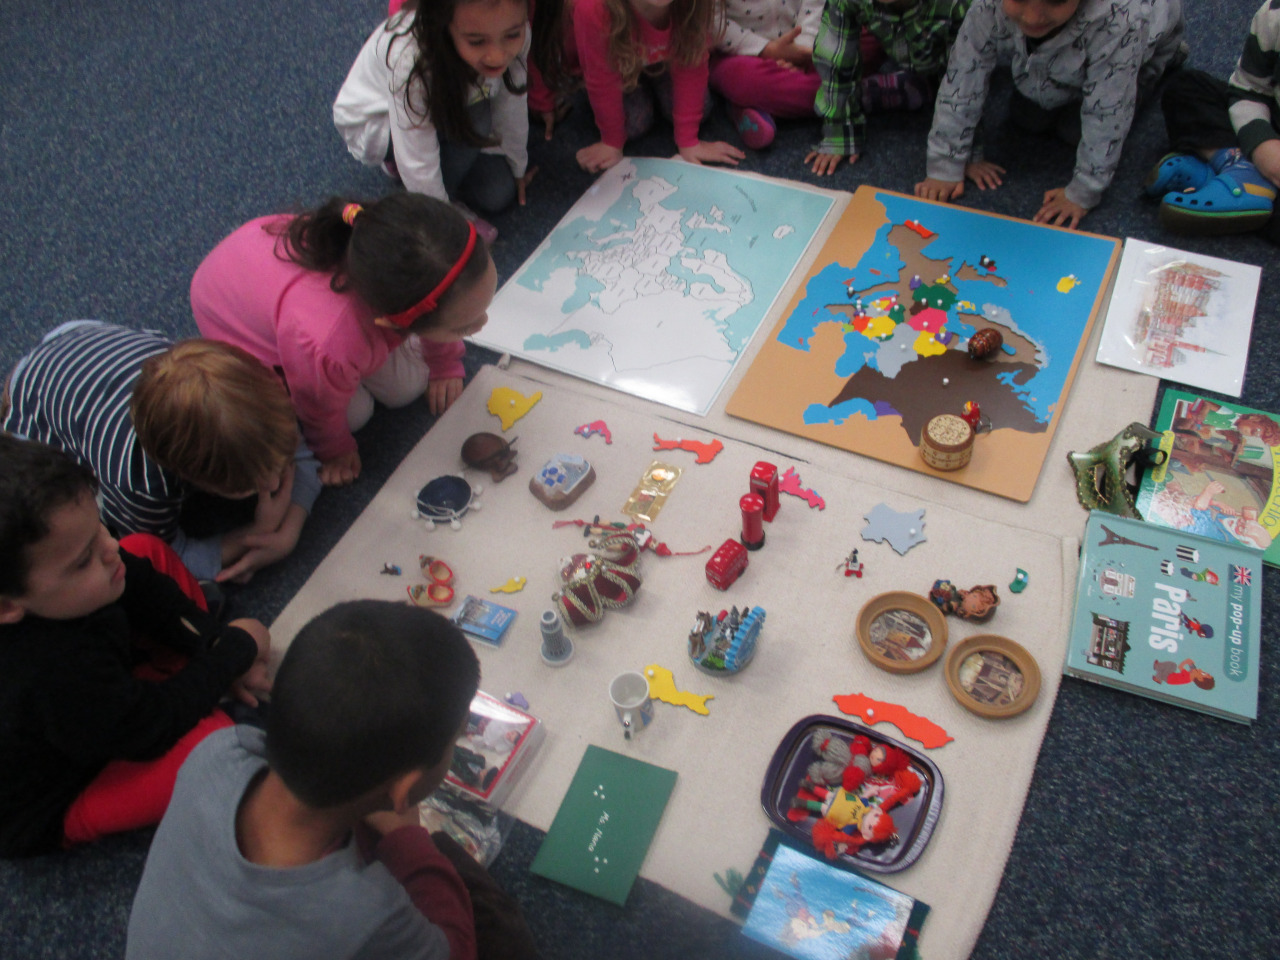 The Primary 1 students learned about the continent of Europe. They enjoyed detailed presentations about all the major countries and investigated a collection of souvenirs and artifacts that Ms. Nanuli shared.